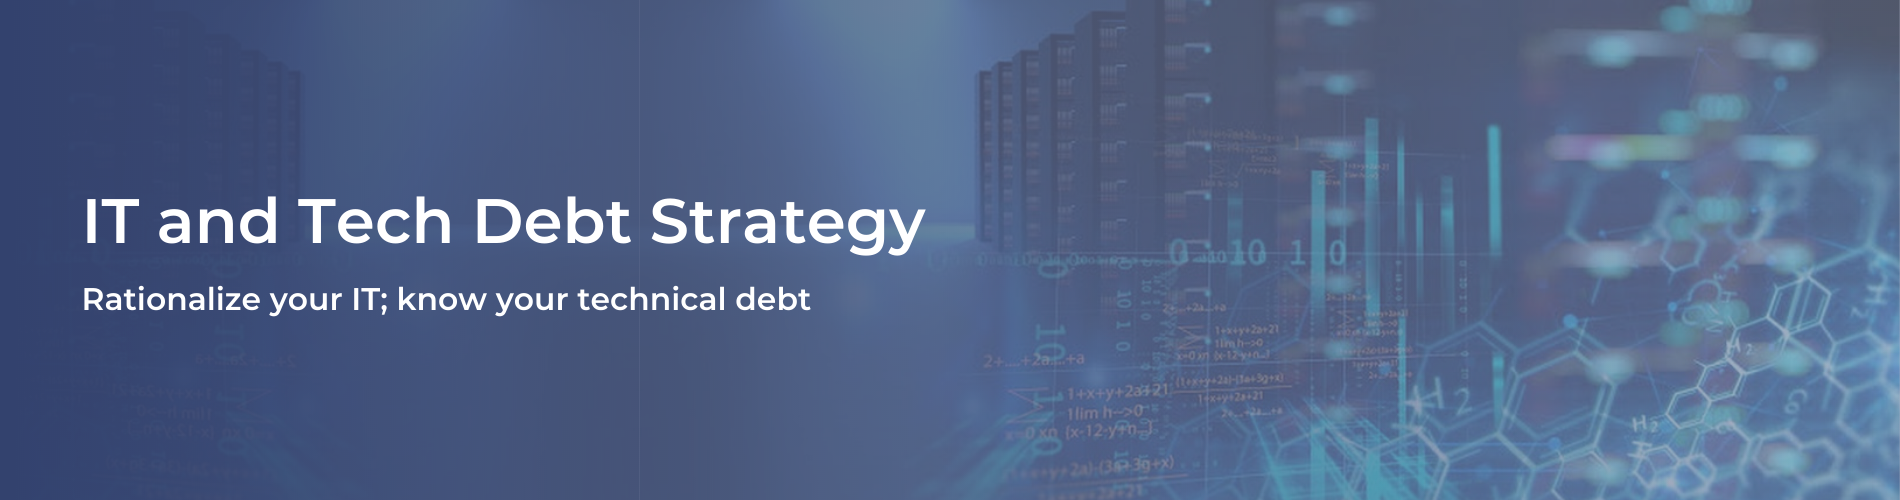 IT-and-Tech-Debt-Strategy